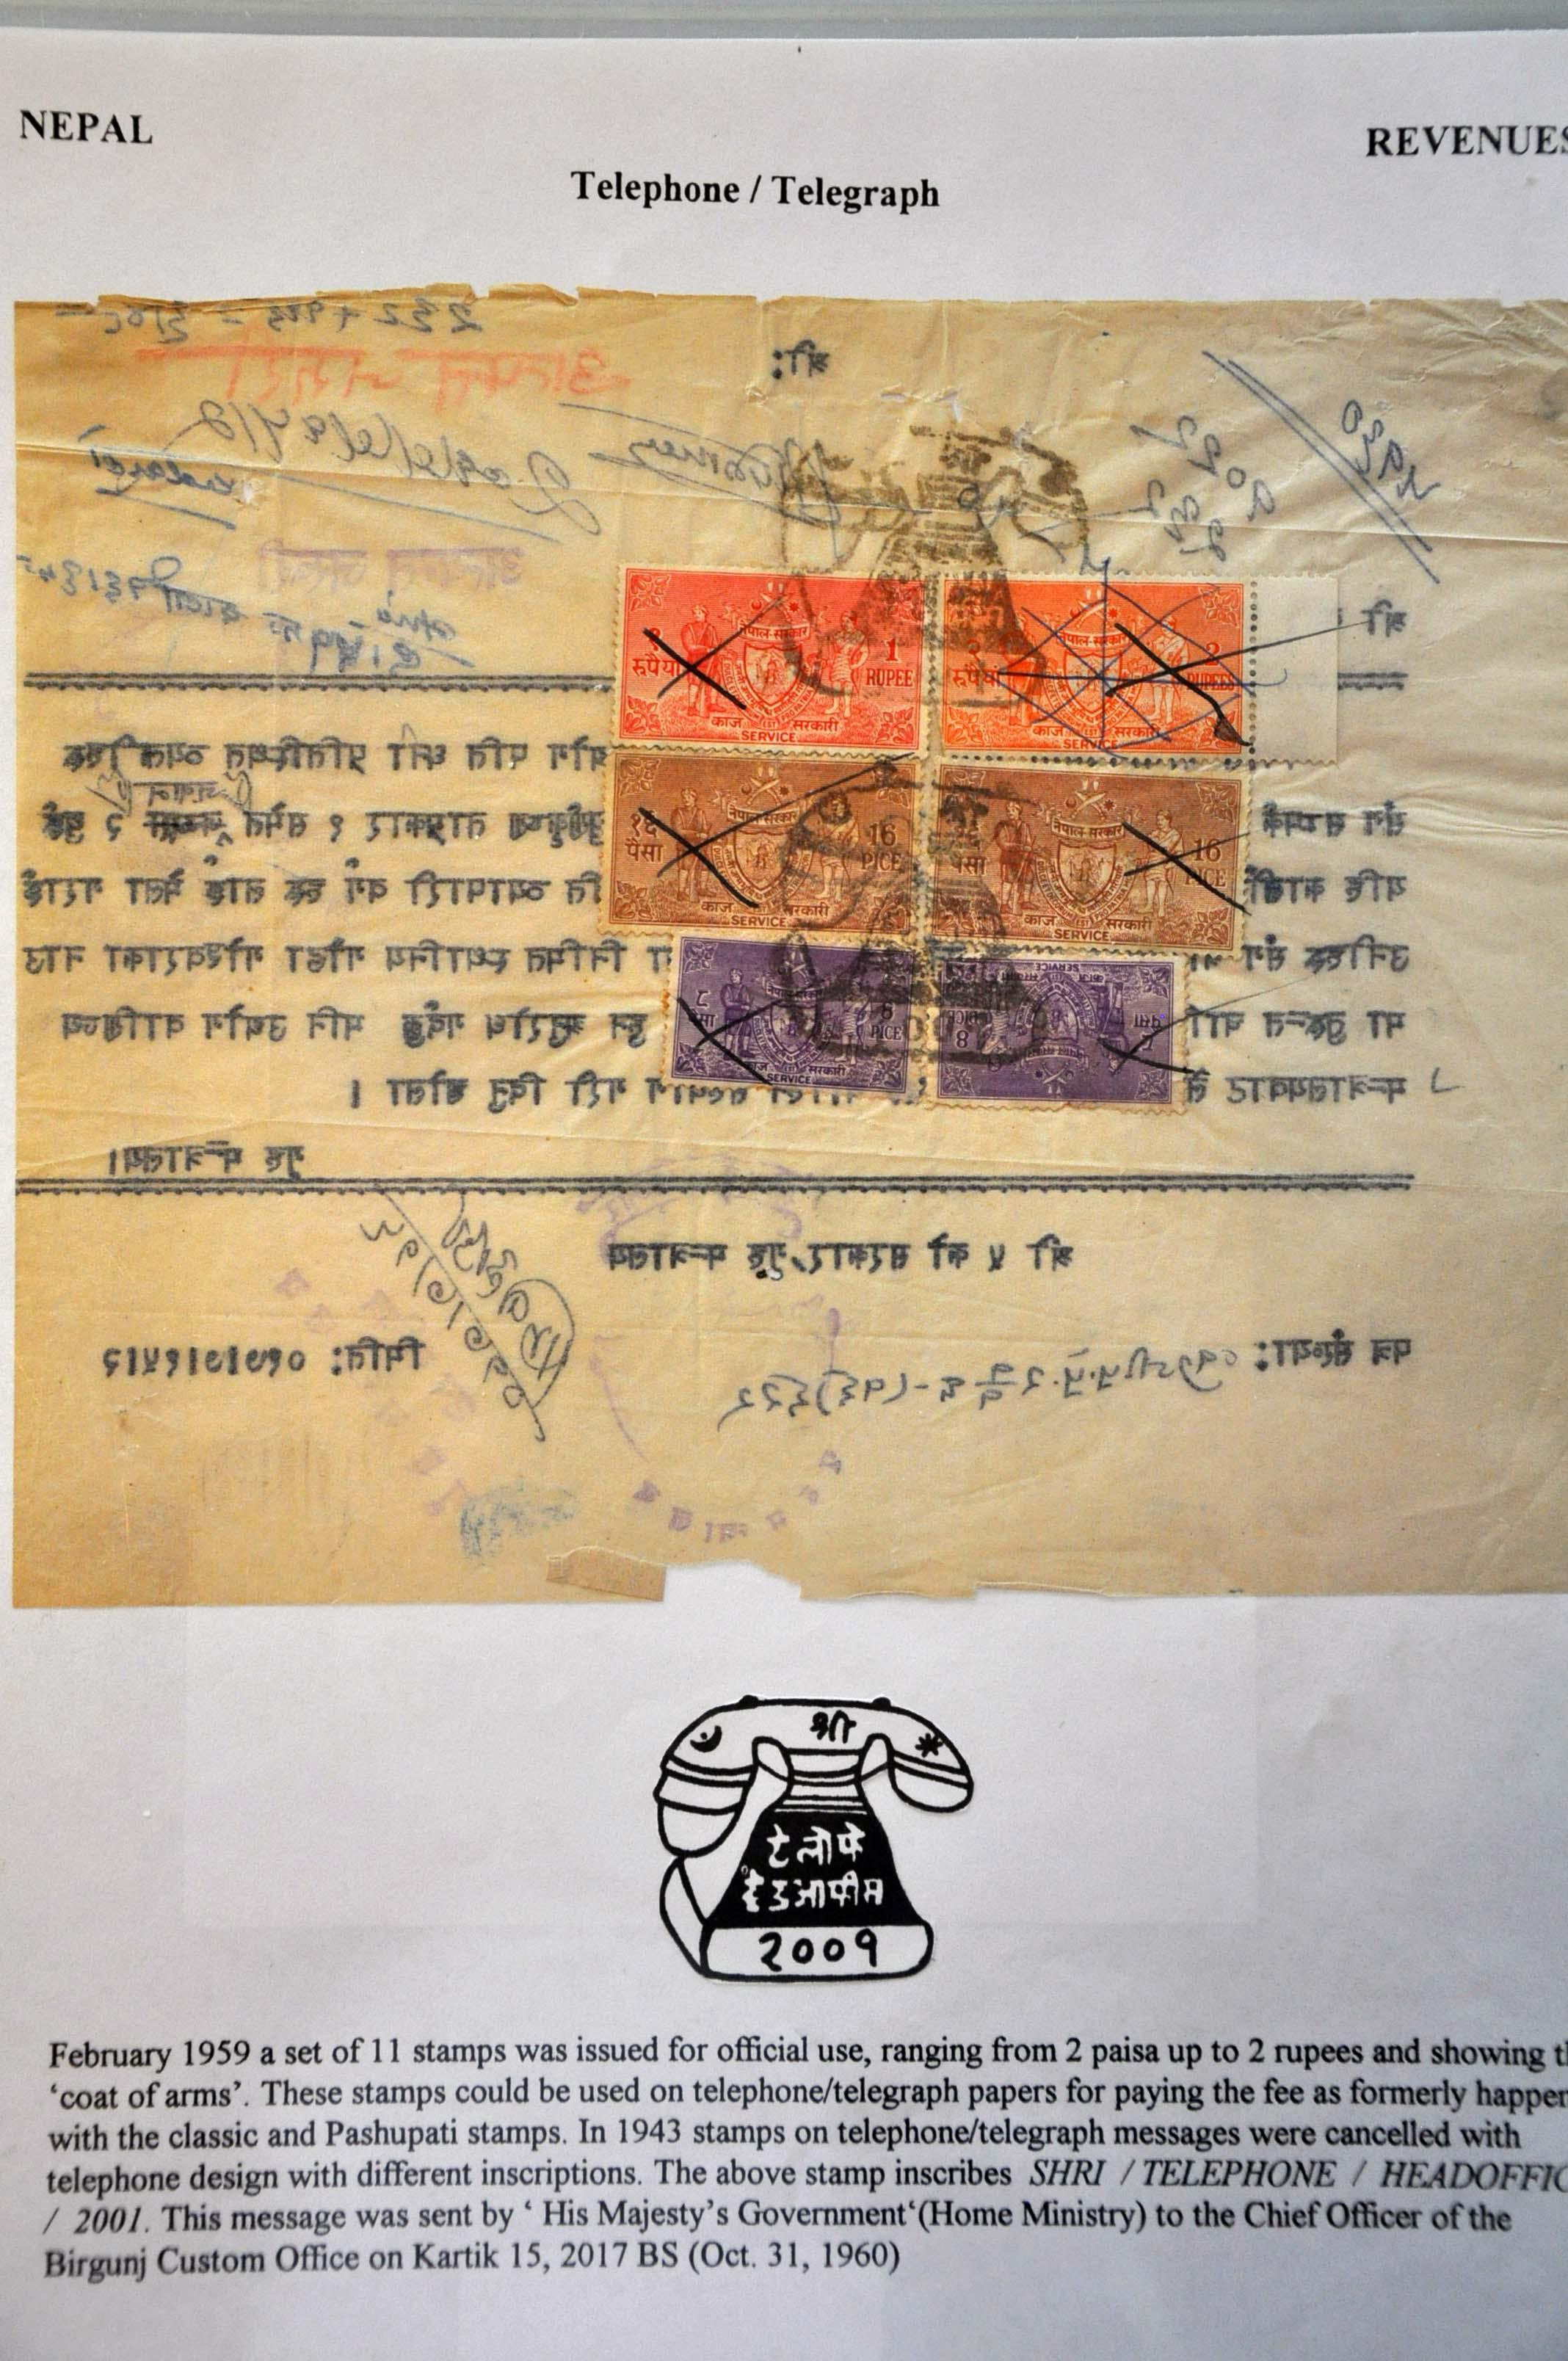 Lot 106 - Great Britain and former colonies Nepal -  Corinphila Veilingen Auction 245-246 Day 1 - Nepal - The Dick van der Wateren Collection, Foreign countries - Single lots, Picture postcards